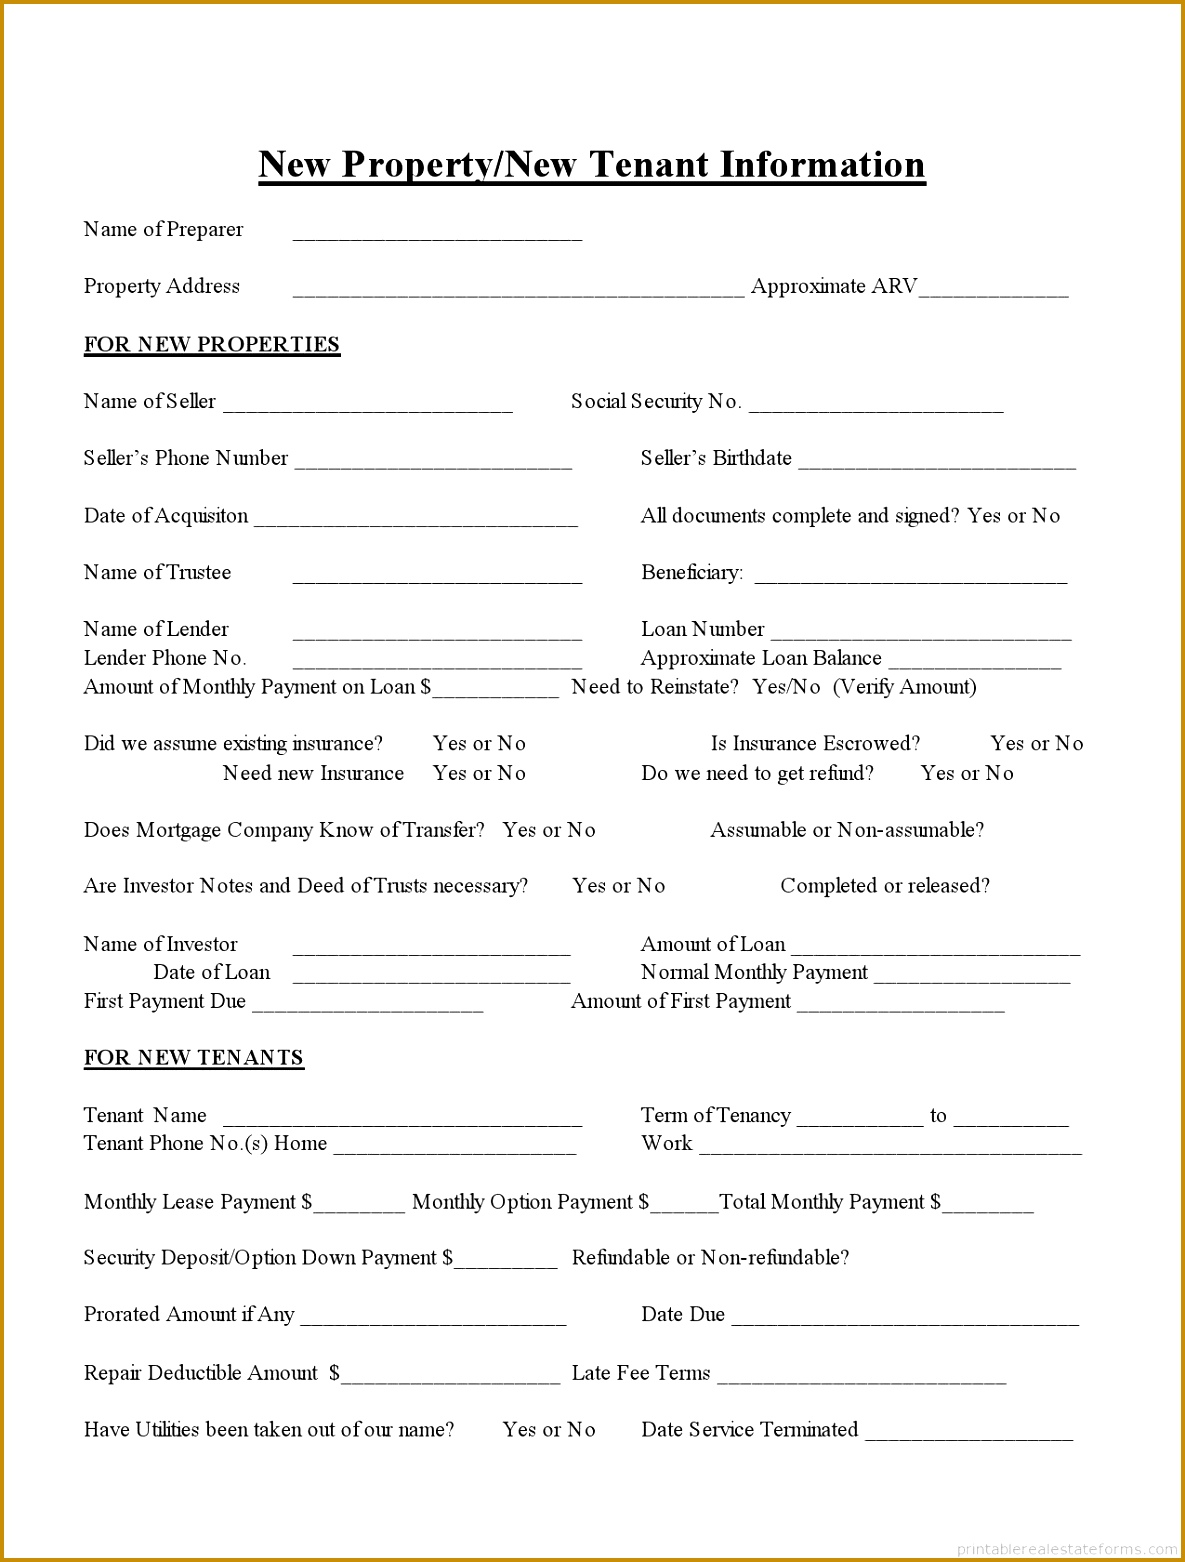 Sample Printable new propertynew tenant information Form 15621185